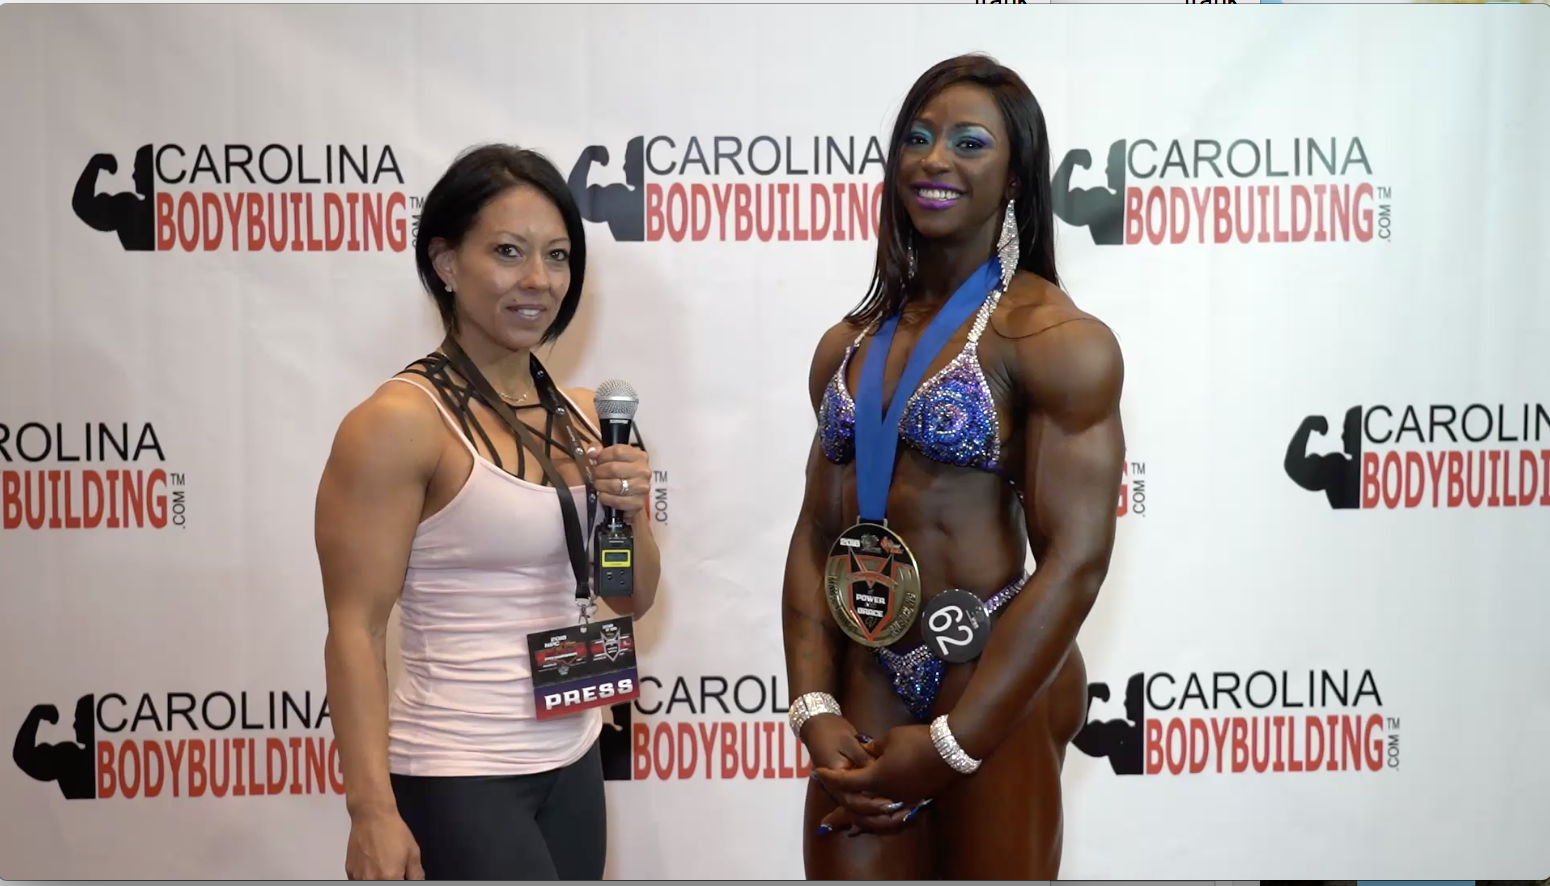 2018 IFBB CHAMPIONS OF POWER AND GRACE WOMEN'S PHYSIQUE WINNER SHERONICA HENTON